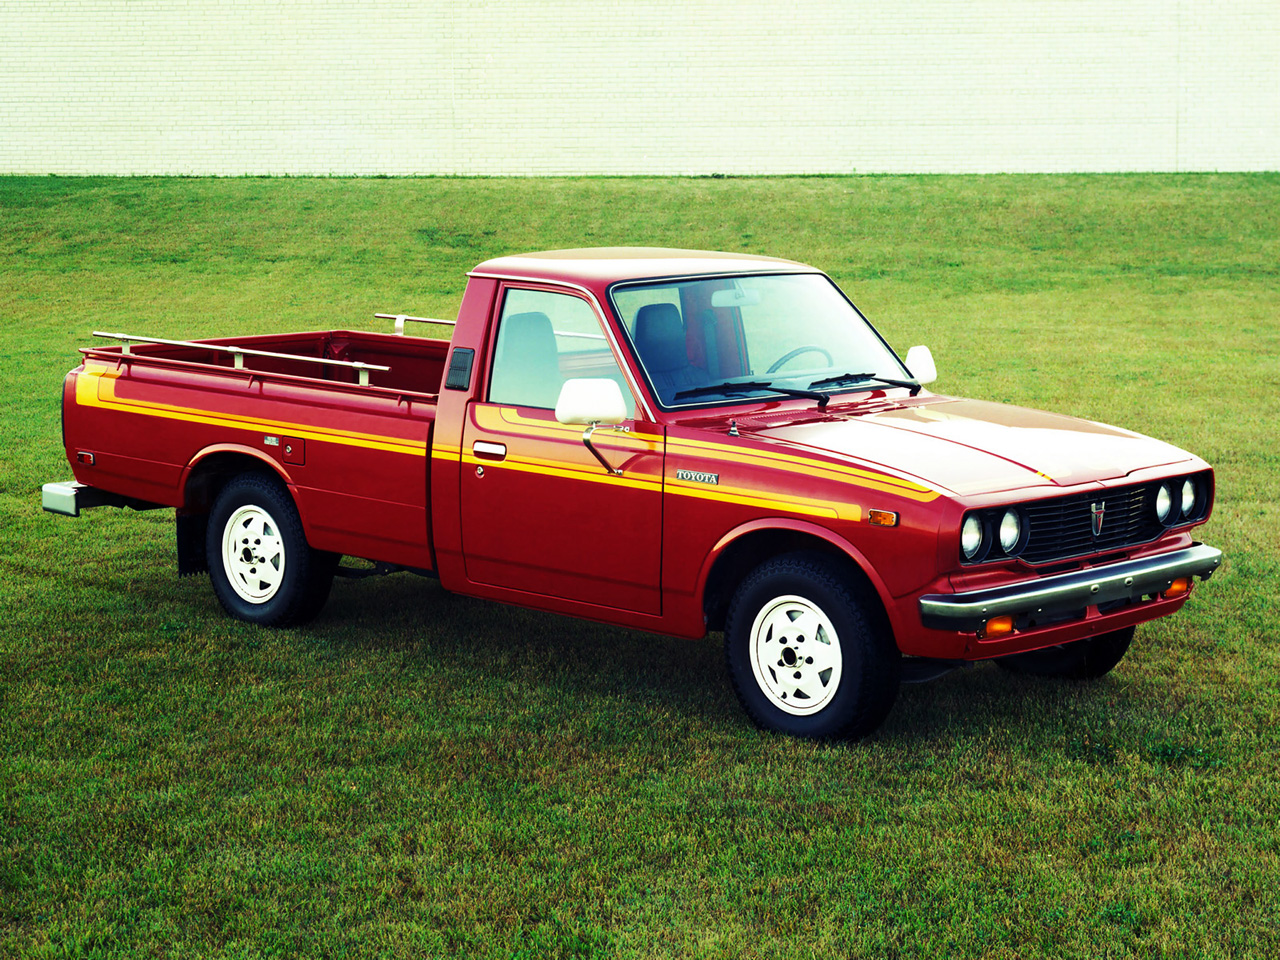 1976 Toyota Pickup | Randy Stern | Flickr